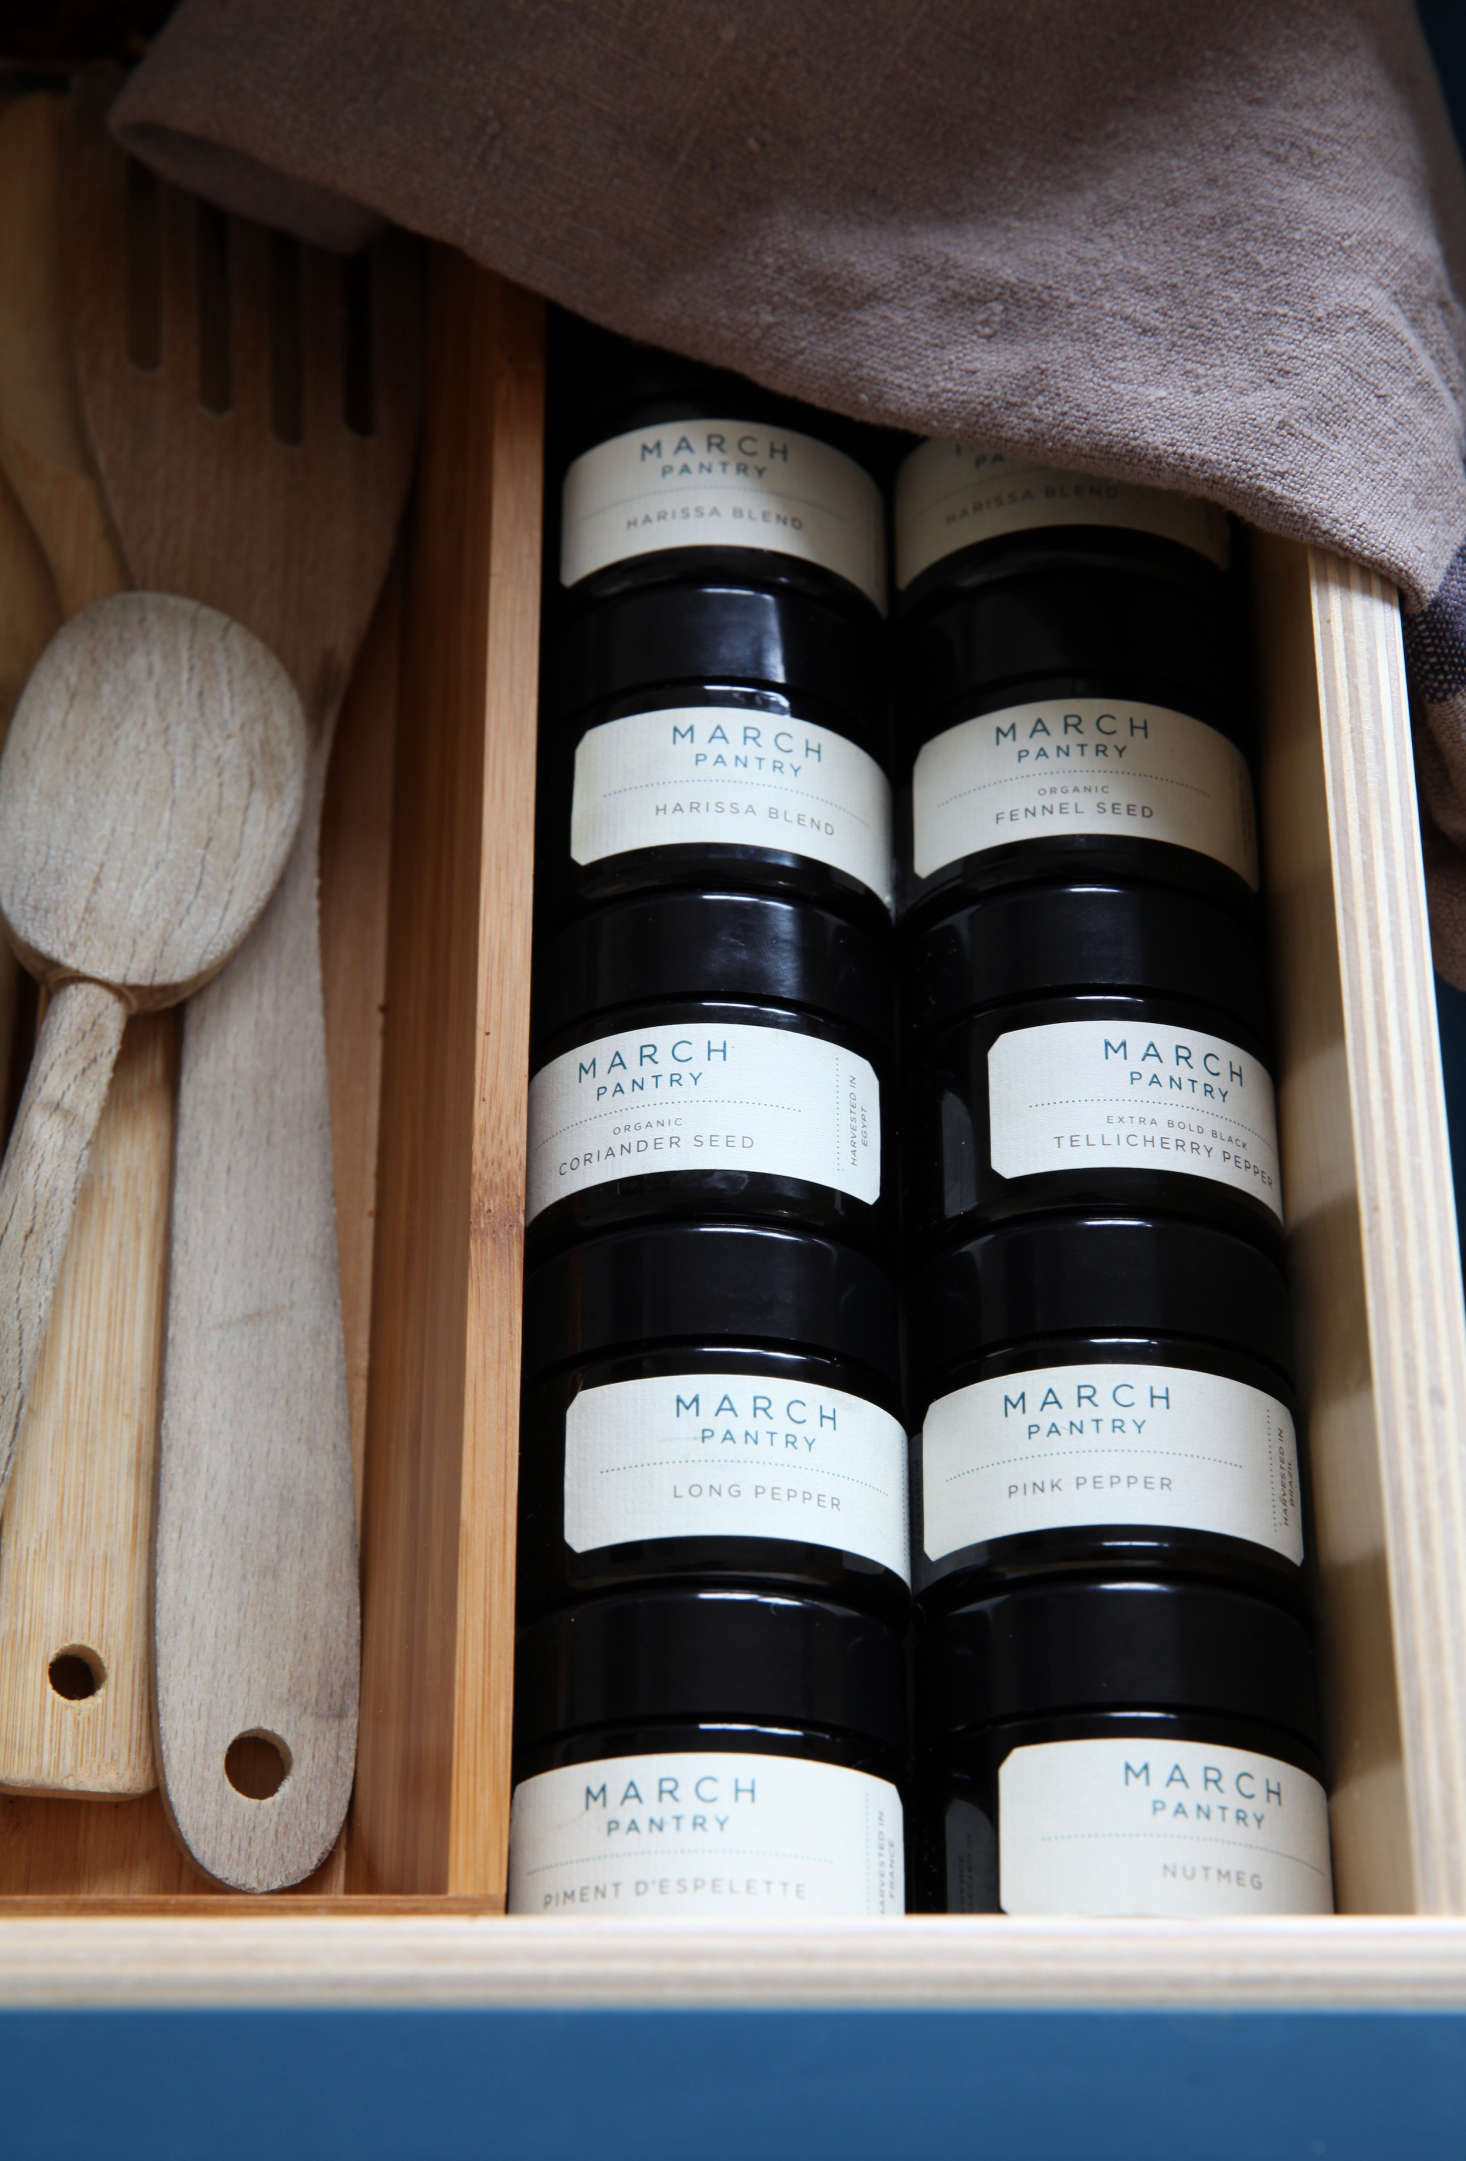 In a drawer by the stove, a variety of spices from March Pantry,starting at $src=